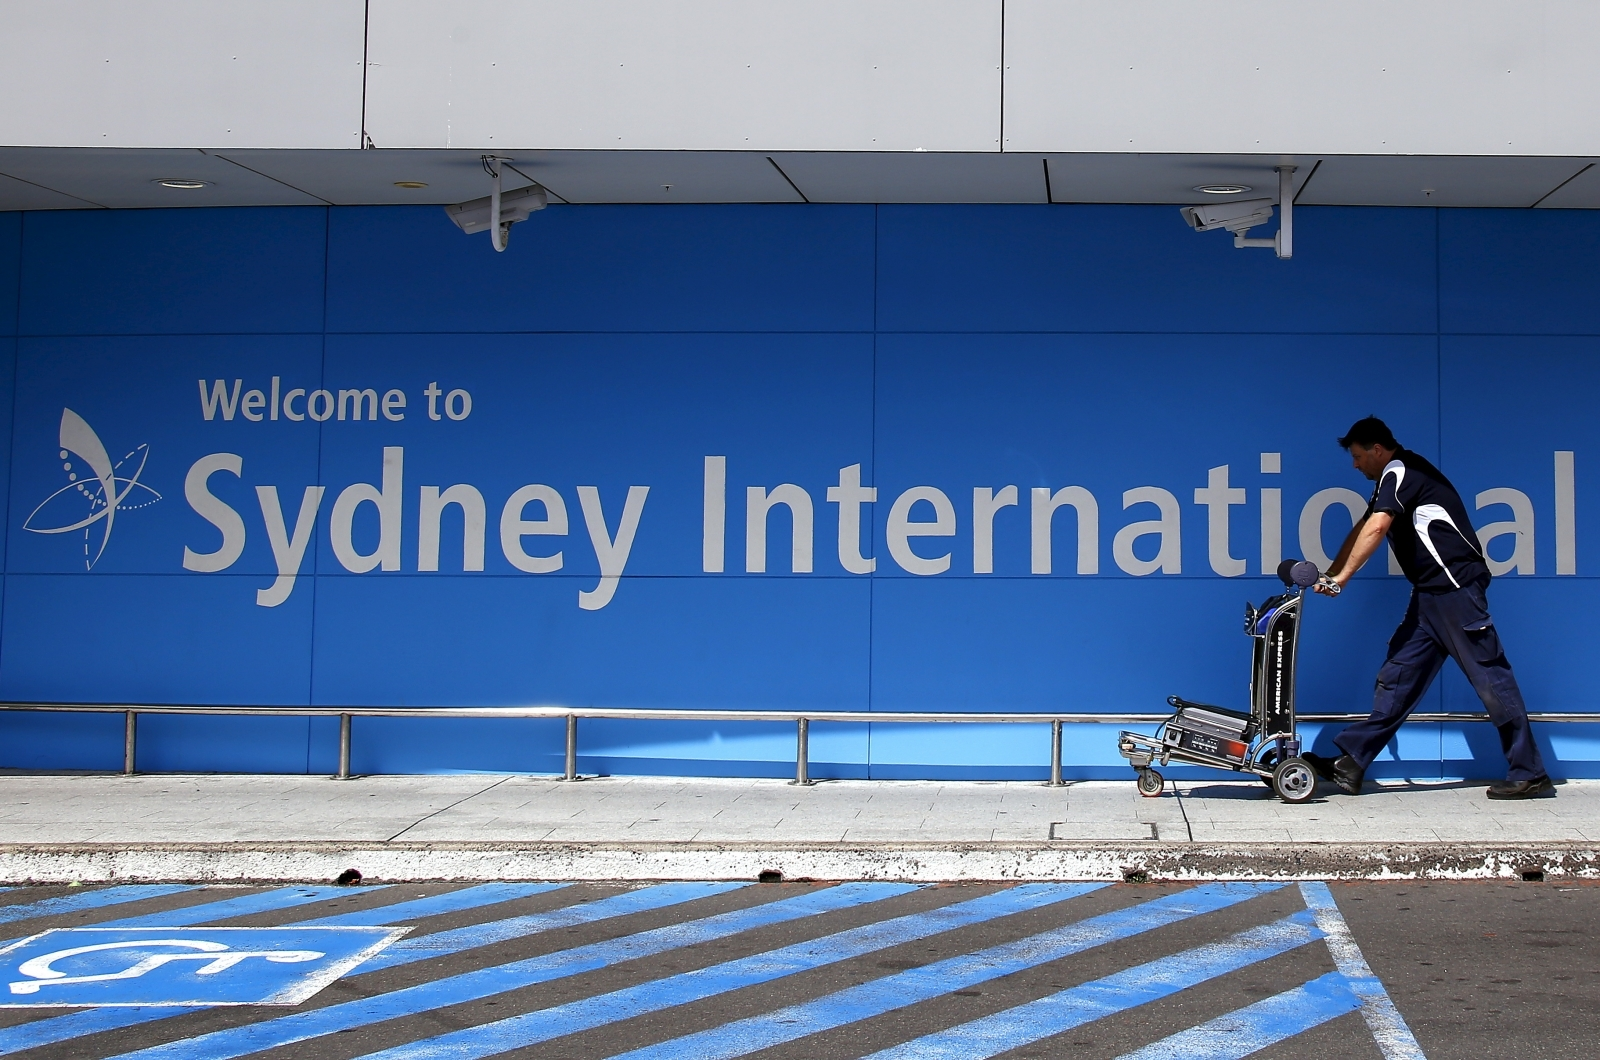 A passenger pushes a trolley as he walks towards the departures area at Sydney International Airport, Australia,